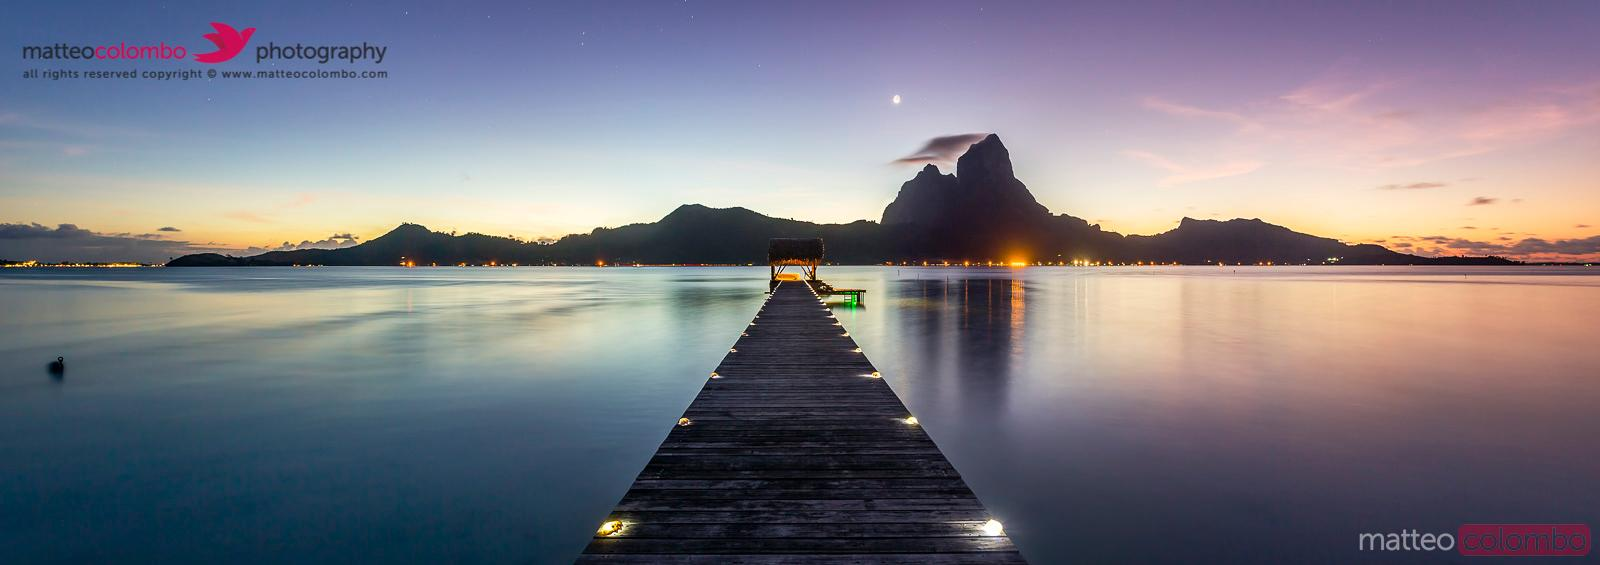 Panoramic of jetty at dusk,  Bora Bora, French Polynesia